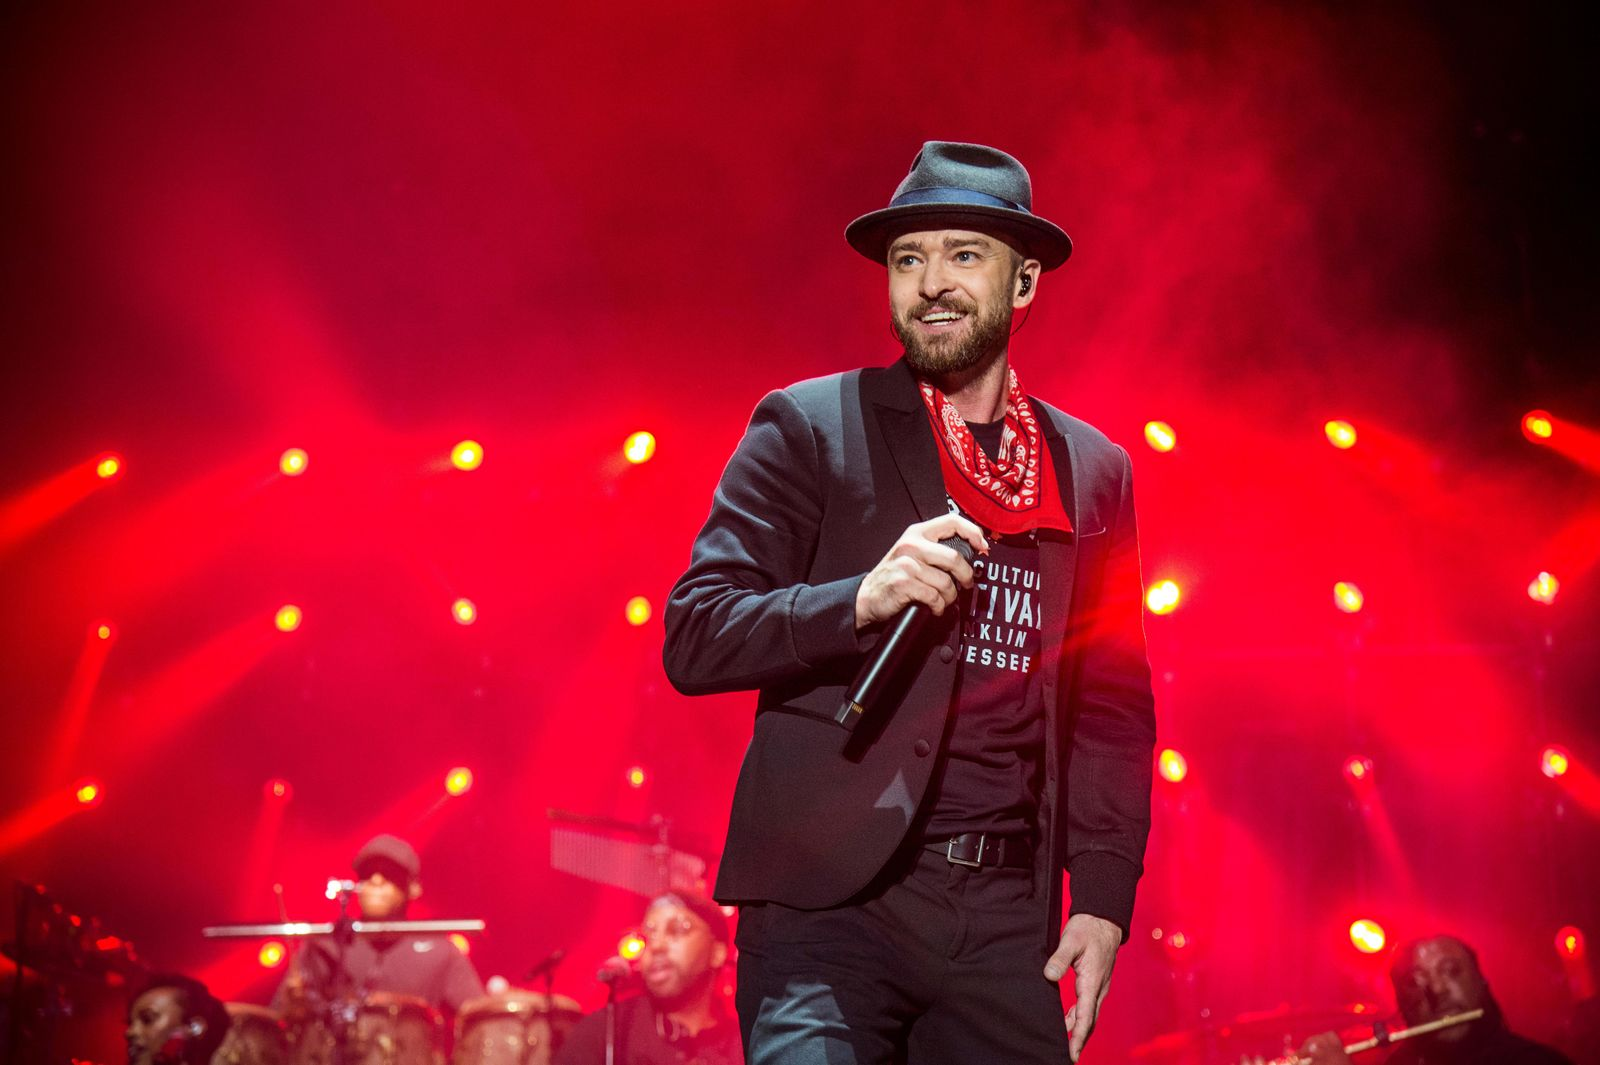 FILE - In this Sept. 23, 2017 file photo, Justin Timberlake performs at the Pilgrimage Music and Cultural Festival in Franklin, Tenn. (Photo by Amy Harris/Invision/AP, File)